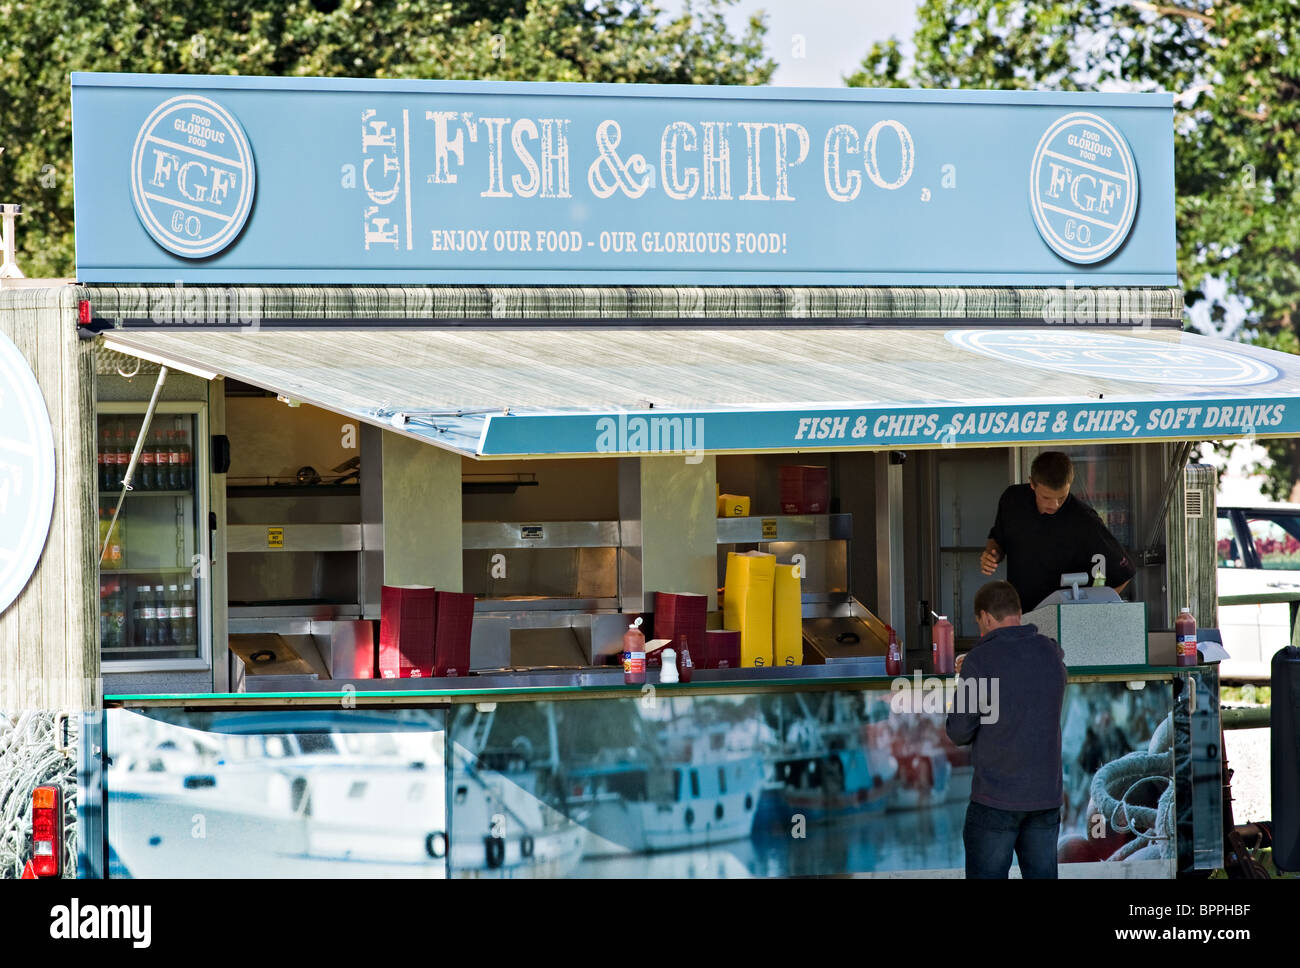 Fish and Chip Catering Food Stall at Oulton Park Motor Racing Circuit Cheshire England United Kingdom UK - Stock Image